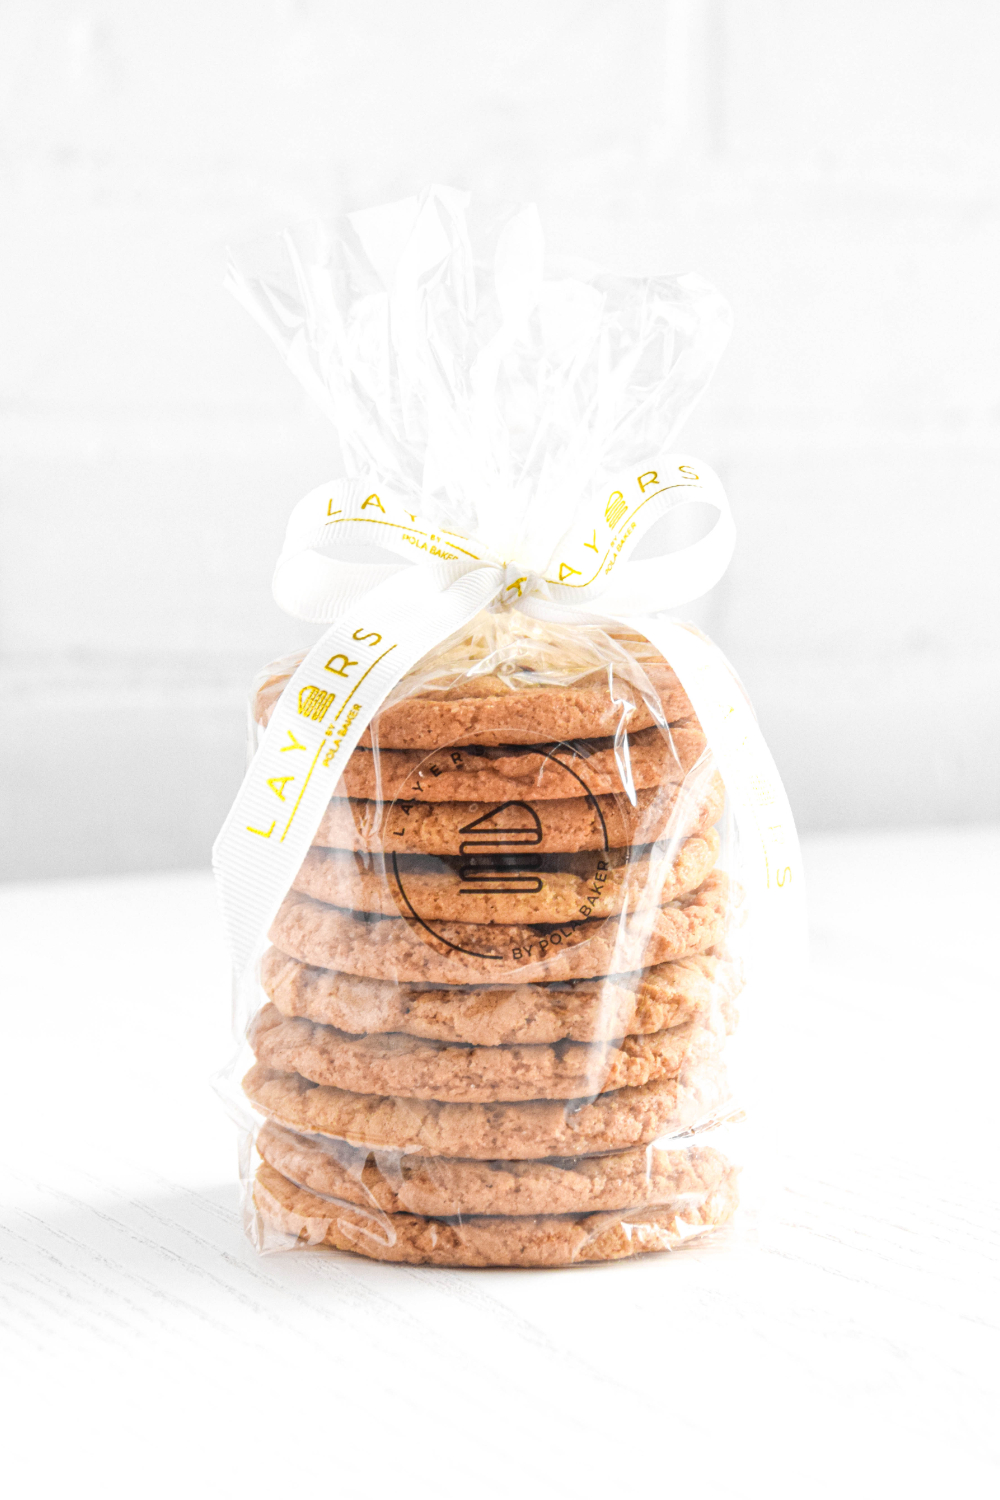 bag of cookies